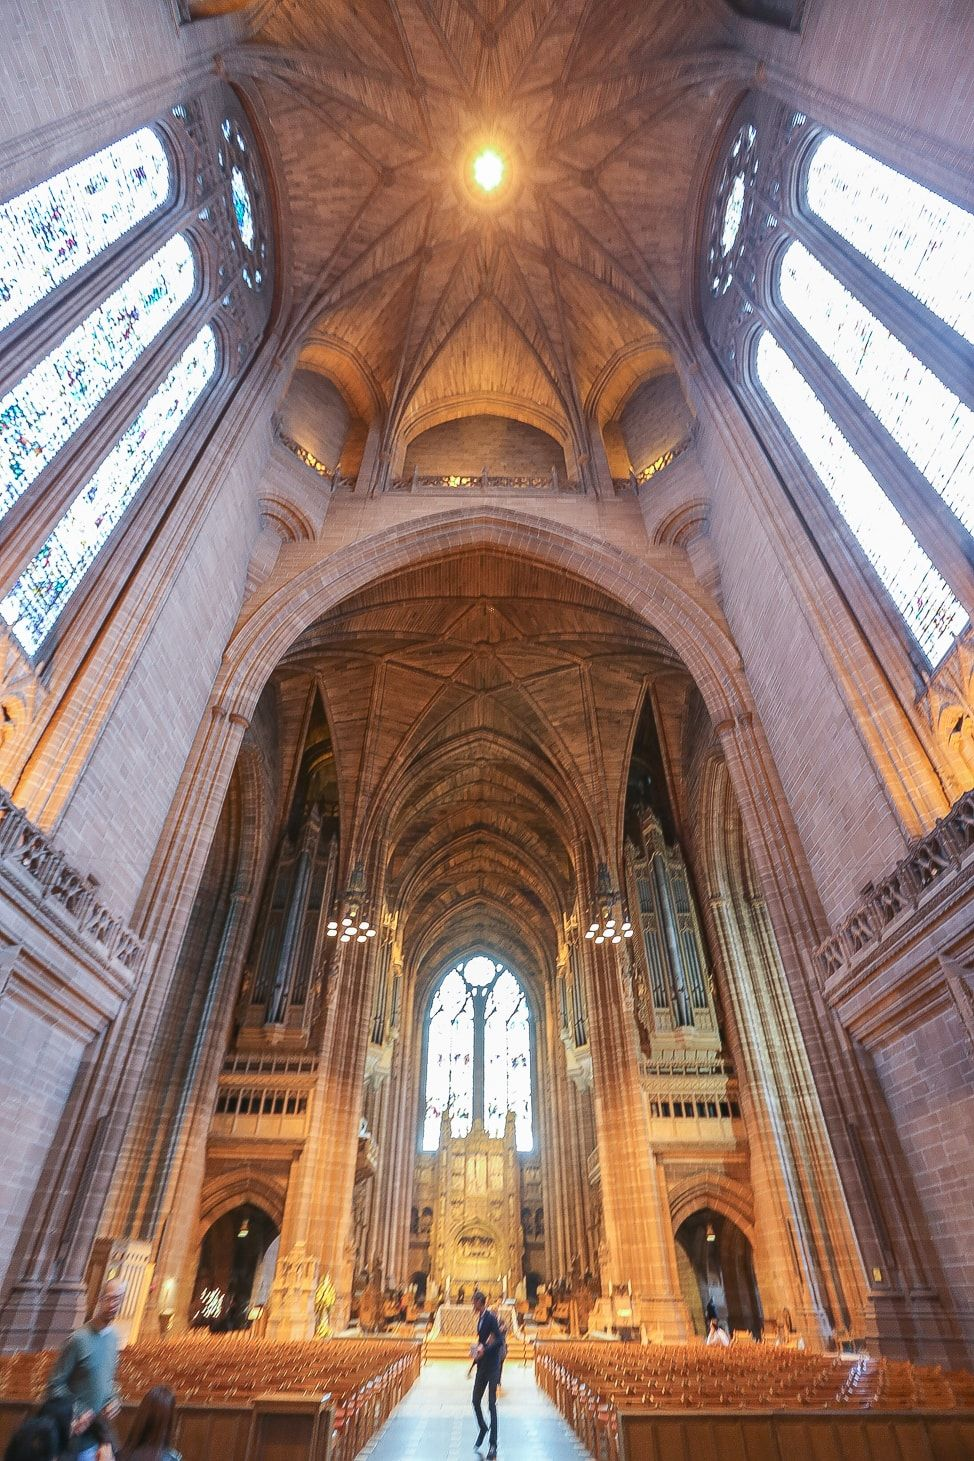 Liverpool, England  Liverpool Cathedral, one of England's relics that survived two world wars, is one of the most spectacular buildings in the world and well worth a visit if you're passing through the UK.